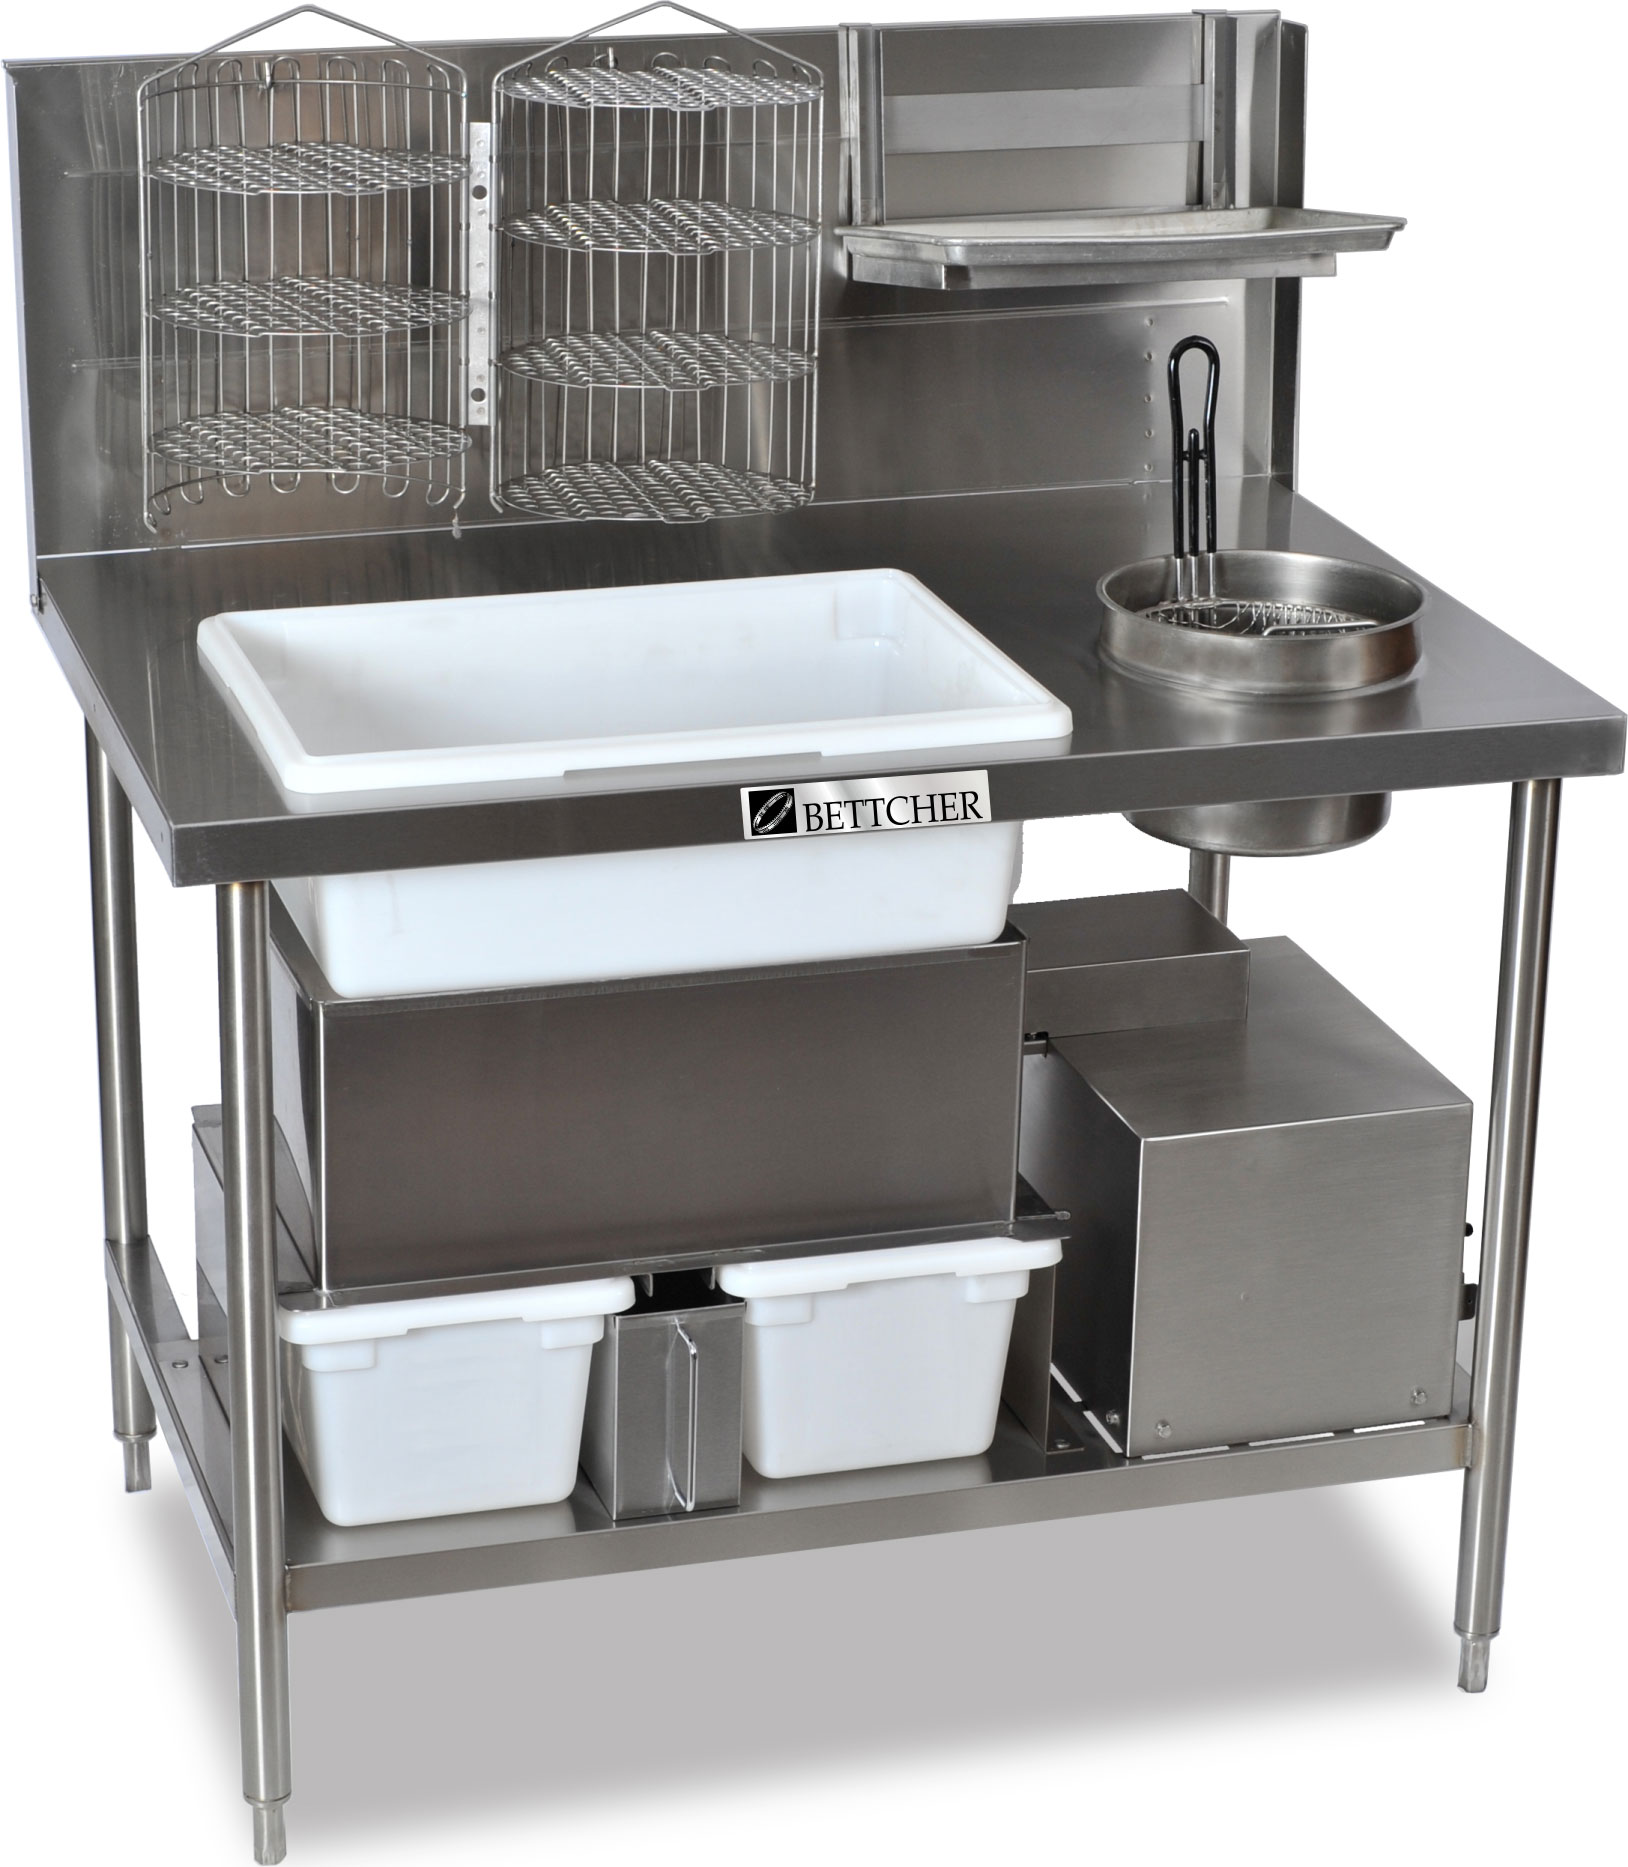 Bettcher Industries Expands Foodservice Equipment Lines